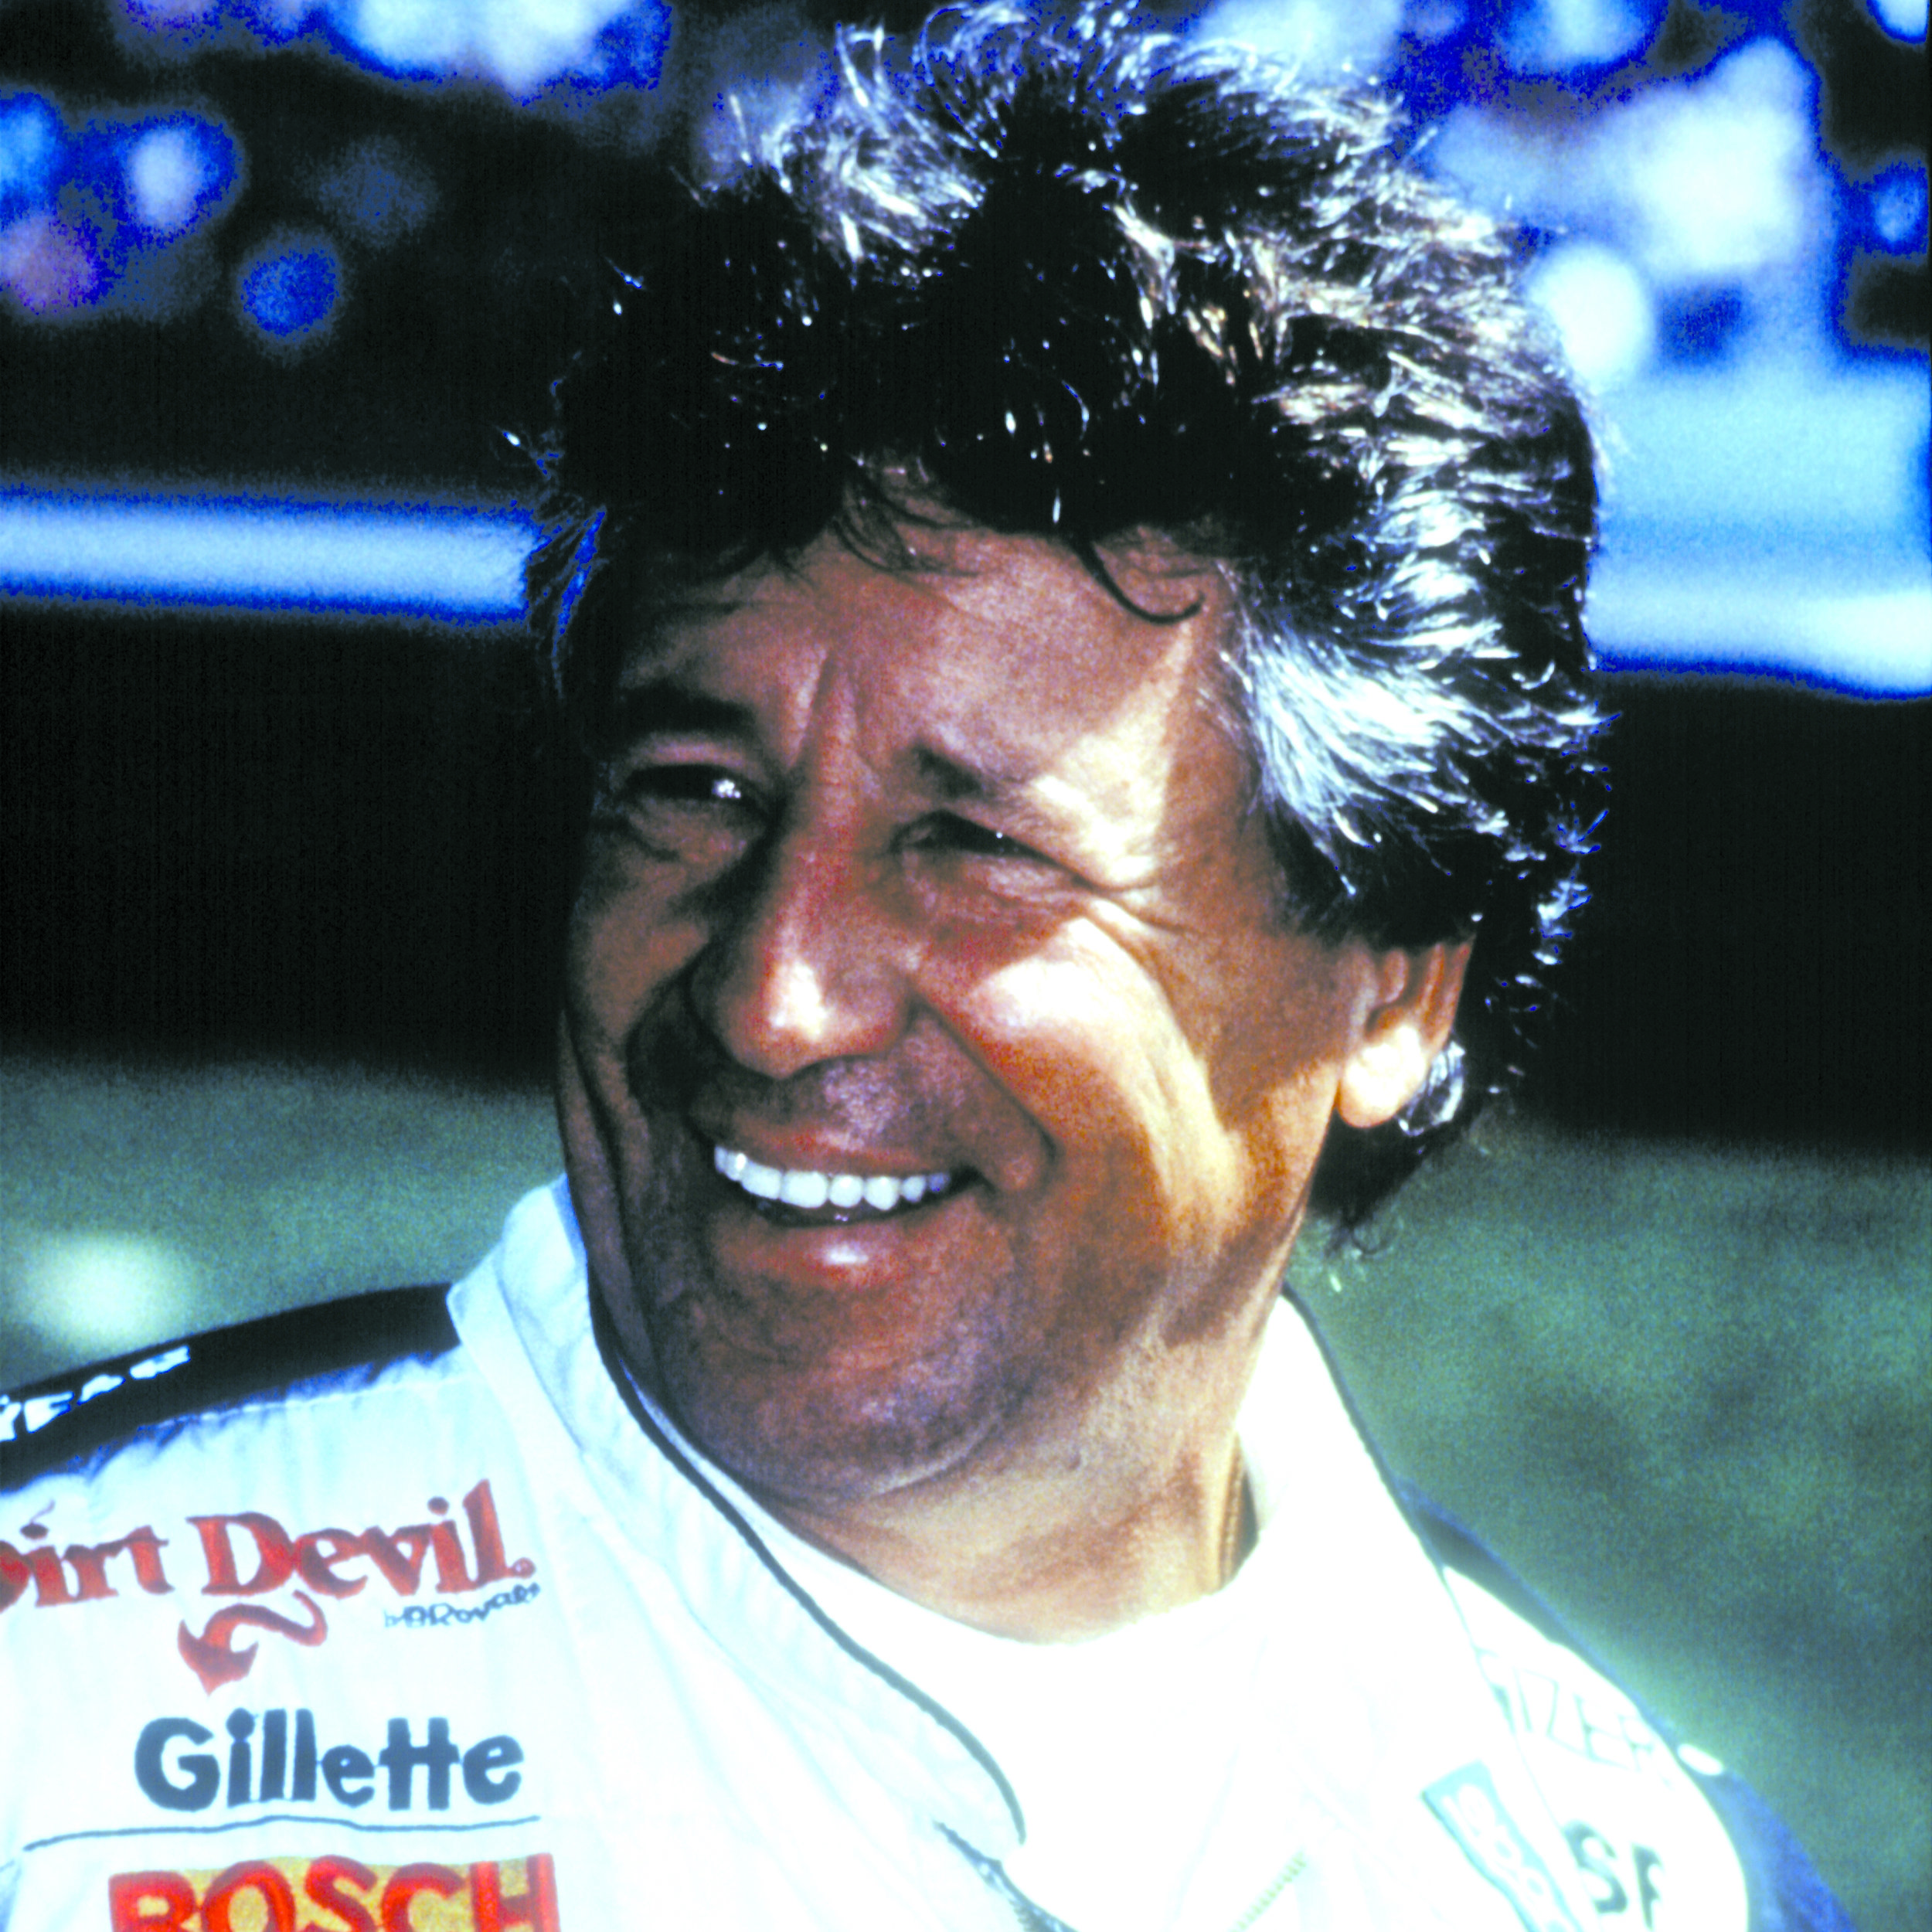 2007 - Mario Andretti - Having proven himself a winner at all levels of competition, Mario Andretti is often referred to as the greatest racecar driver of all time. He took the checkered flag 111 times during his career, which stretched over five decades.